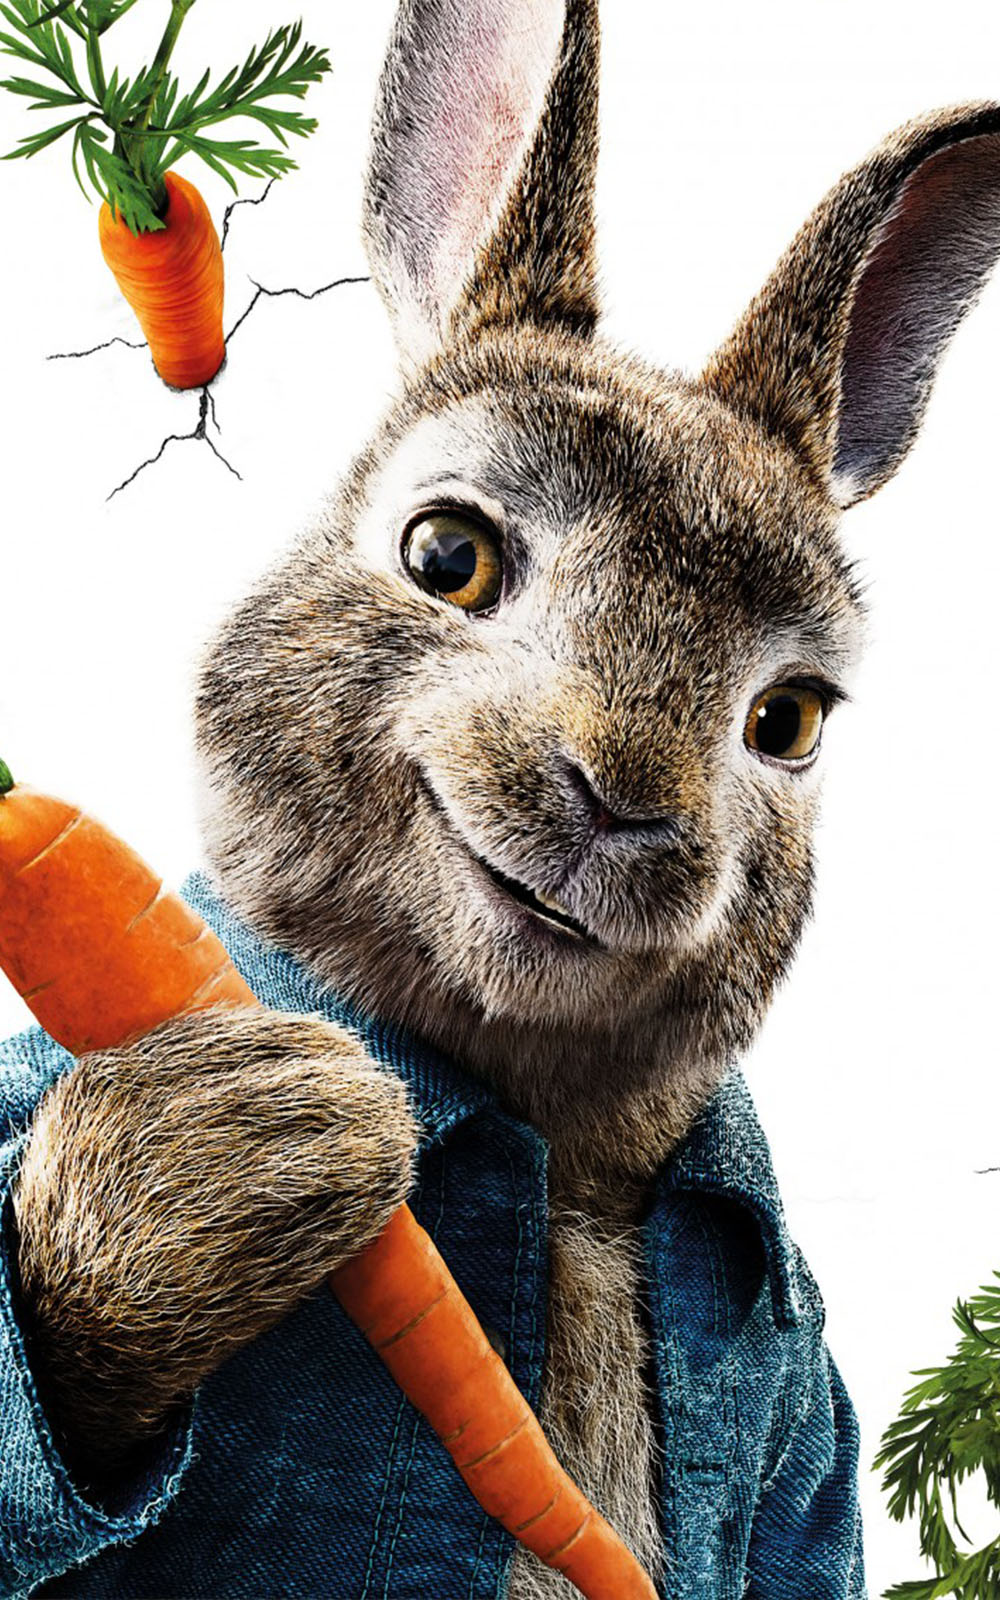 Free Girl Wallpapers For Mobile Phones Download Peter Rabbit Movie Free Pure 4k Ultra Hd Mobile